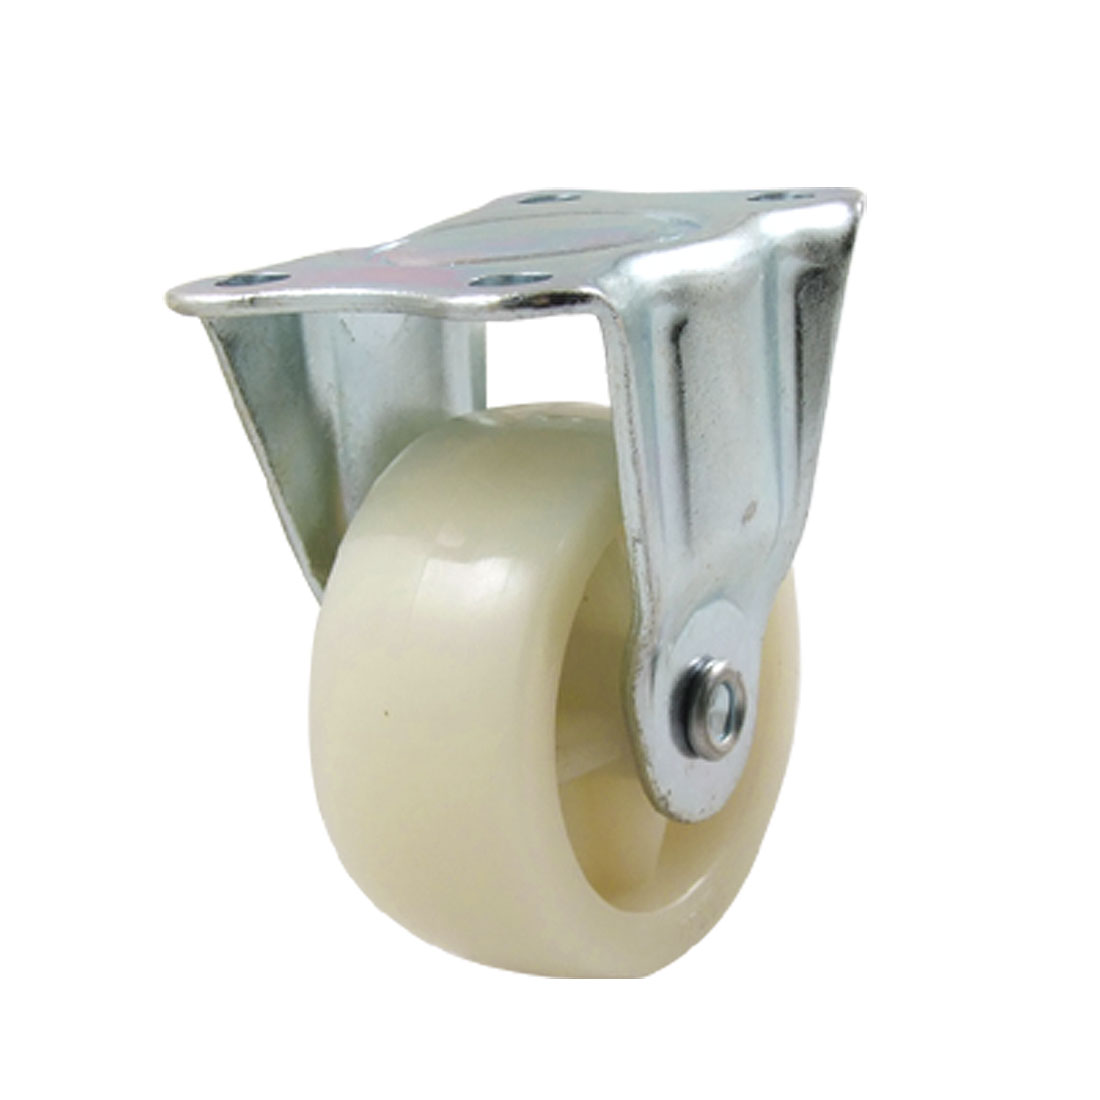 Fixed Type Flat Plate 2 Inch grey white PP Wheel Rigid Caster